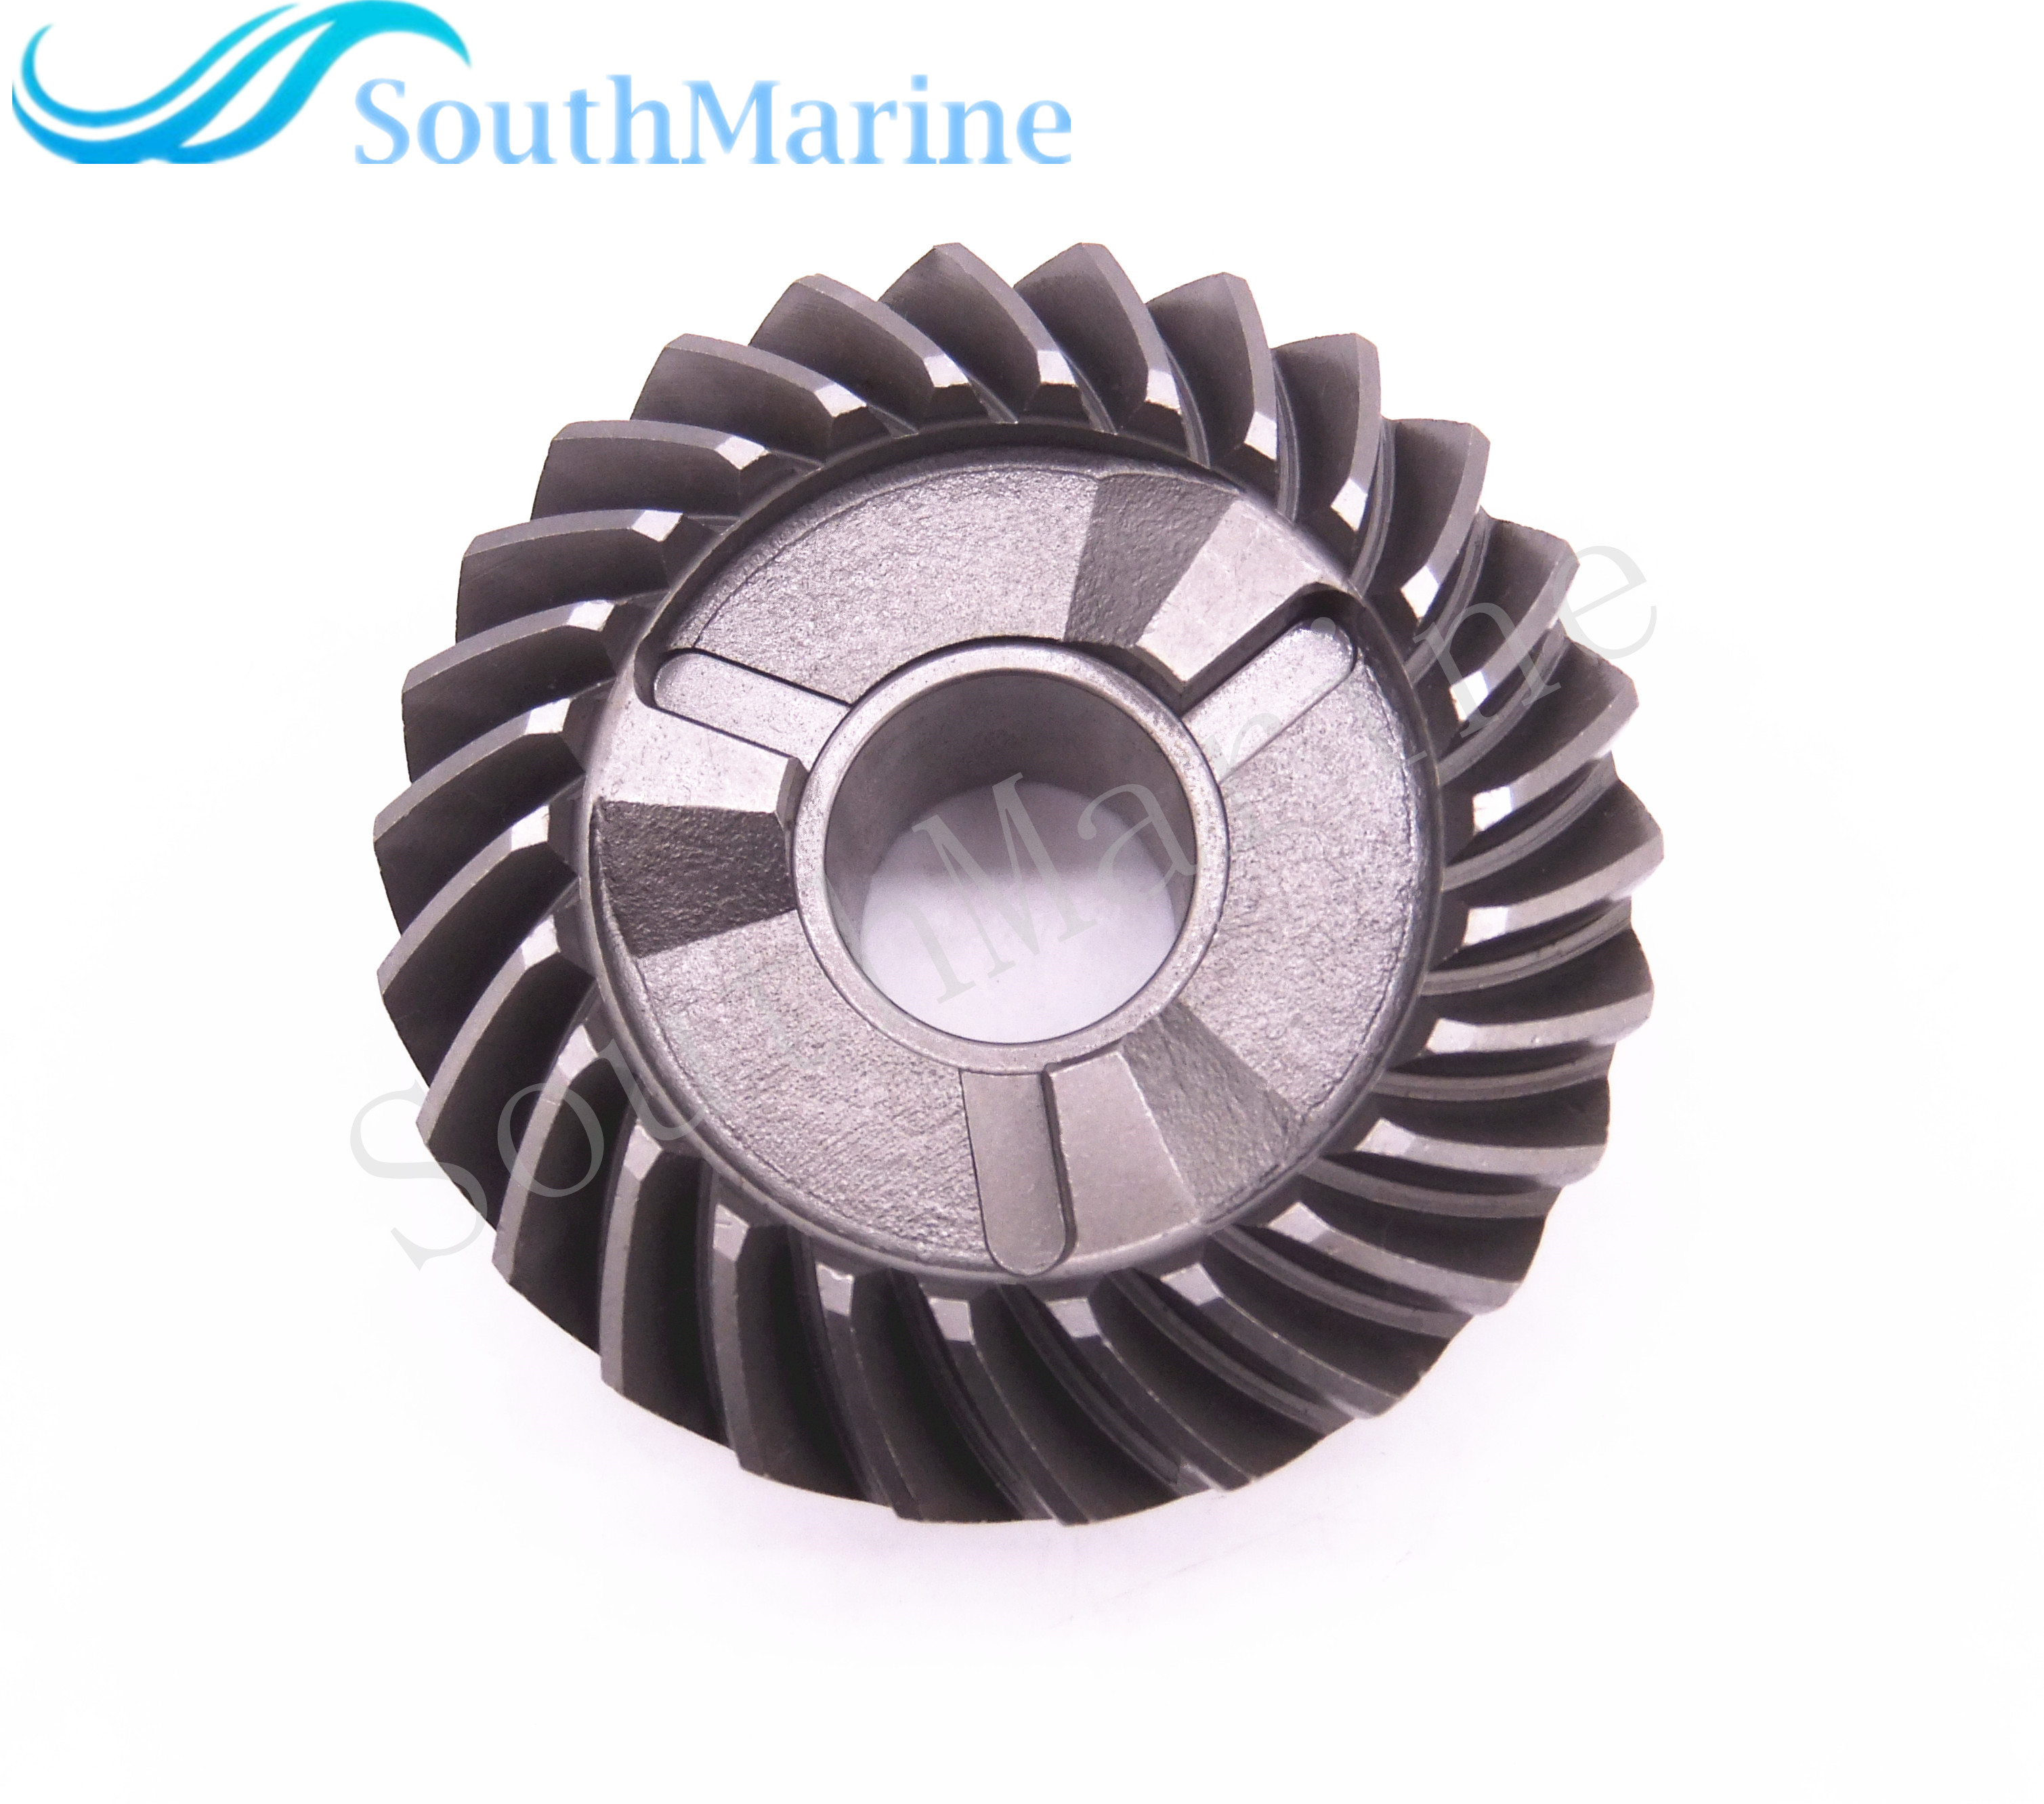 Boat Motor T85-04000005 Reverse Gear for Parsun Outboard Engine 2-Stroke T75 T85 T90 Free Shipping 6b4 45501 10 driver shaft long for yamaha 9 9hp 15hp 2 stroke 15d outboard engine boat motor aftermarket parts 6b4 45501